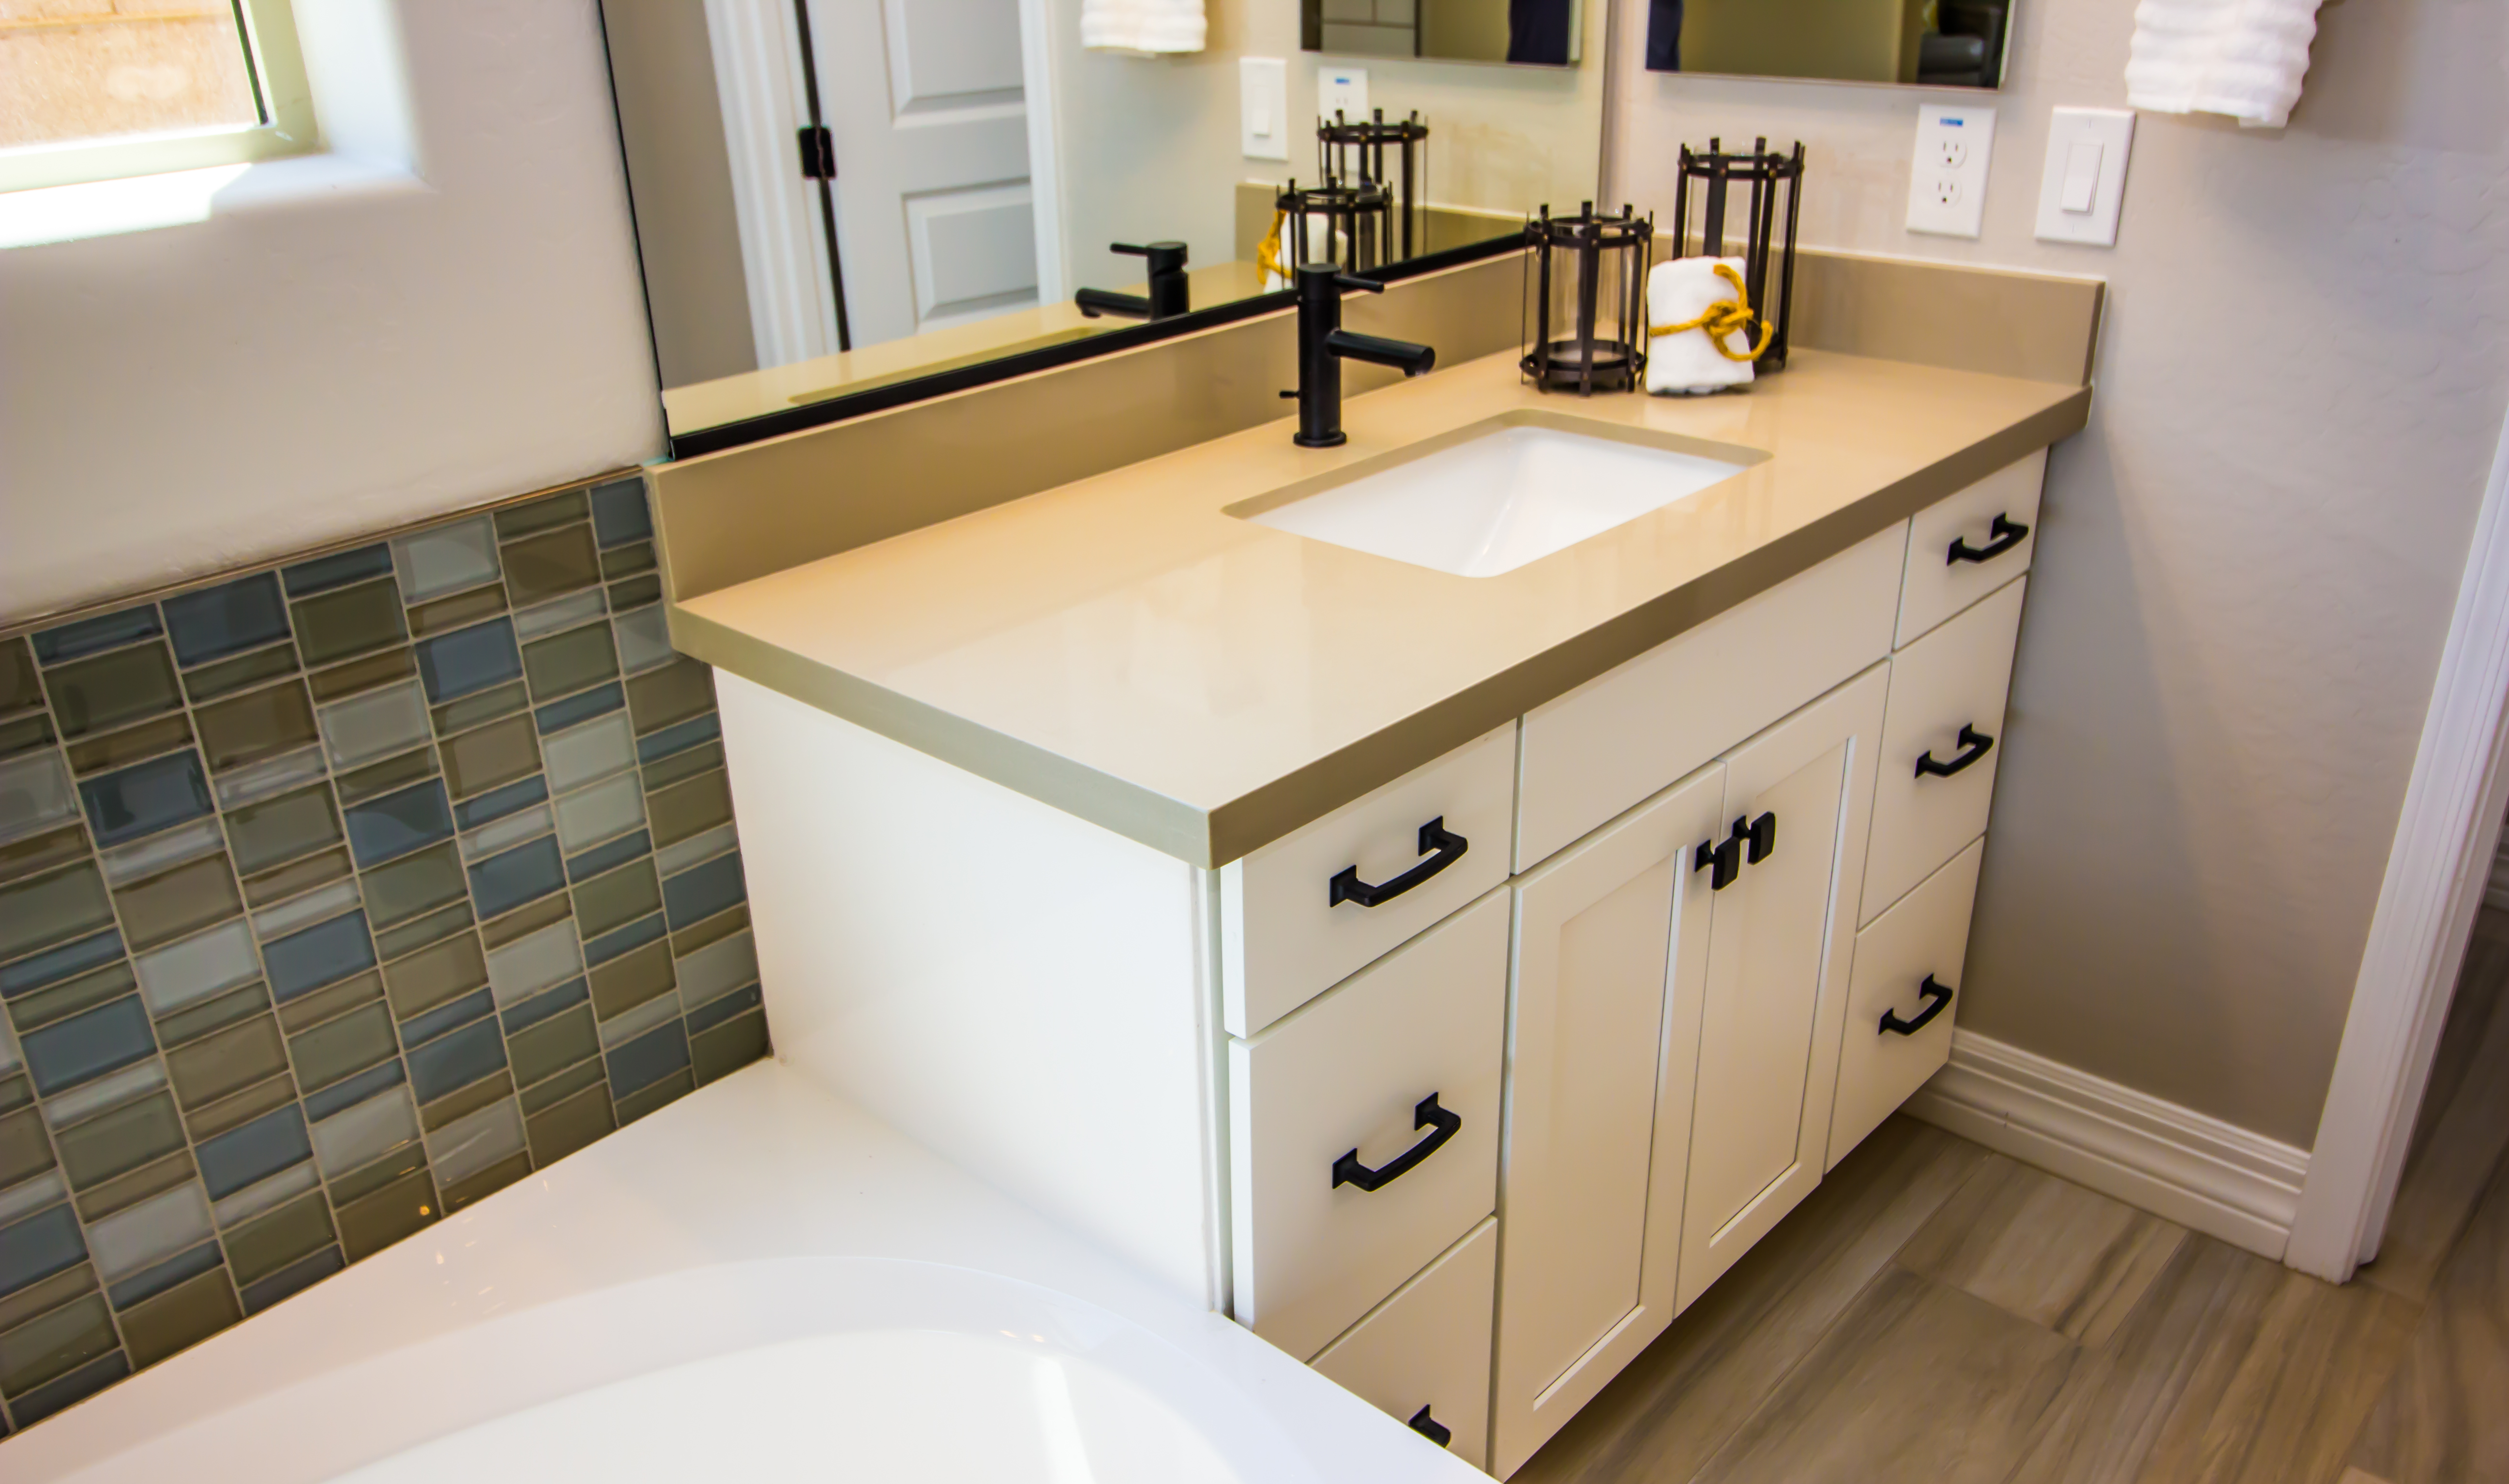 How To Install A Glacier Bay Vanity Sink Hunker